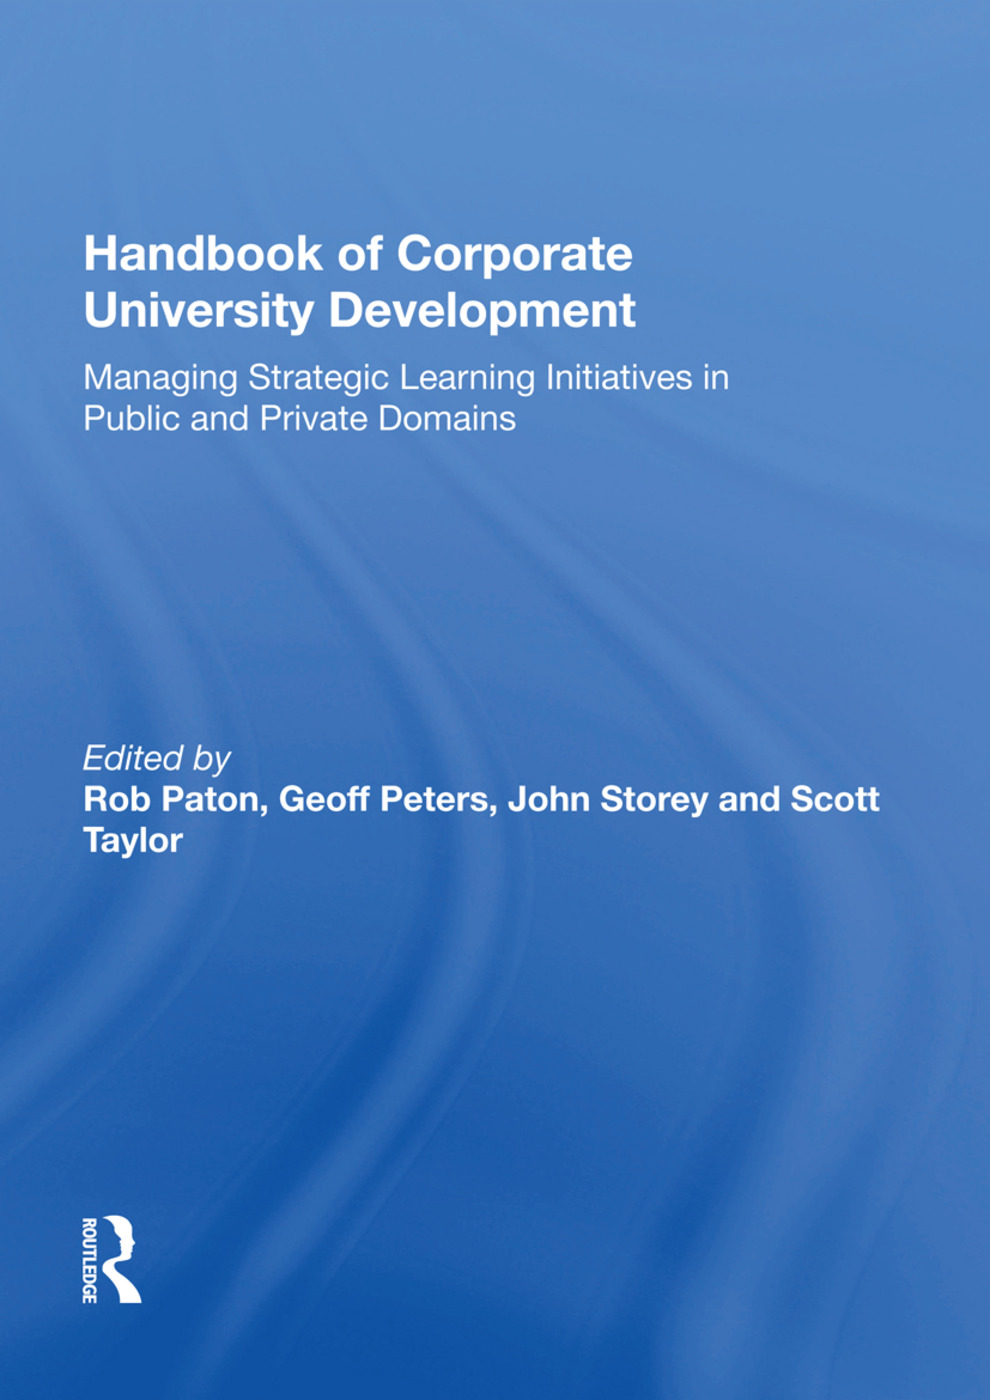 Handbook of Corporate University Development: Managing Strategic Learning Initiatives in Public and Private Domains book cover